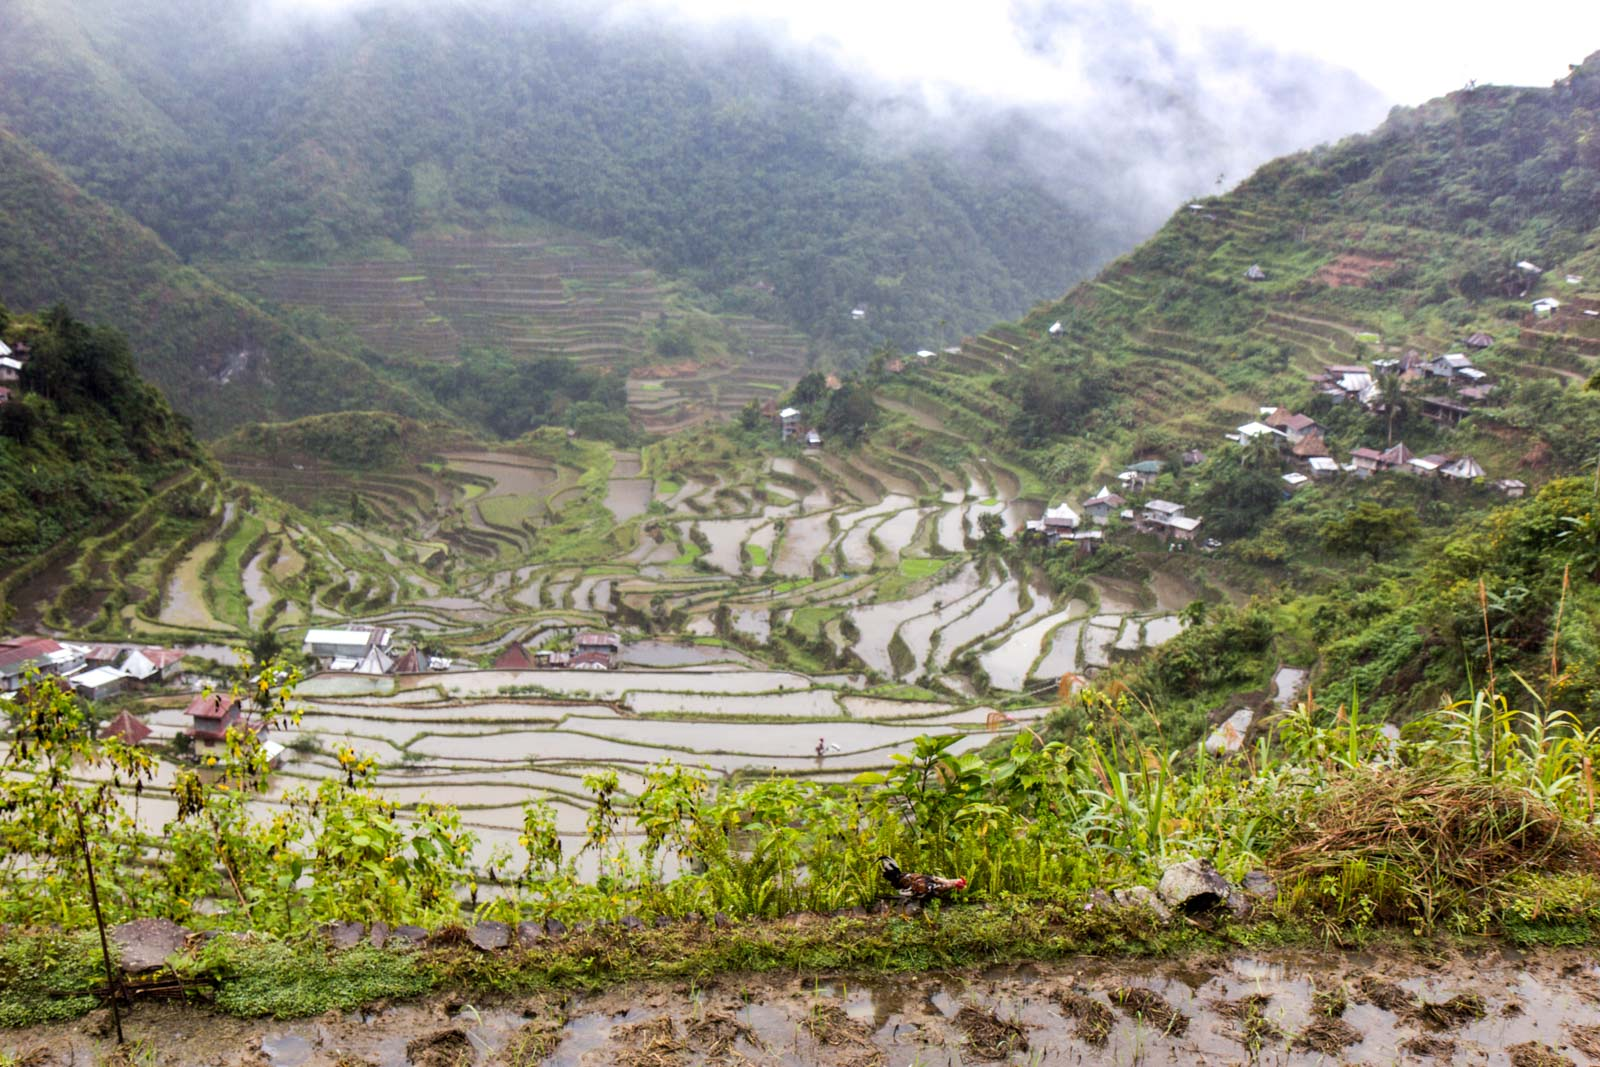 Batad Rice Terraces, Banaue, The Philippines